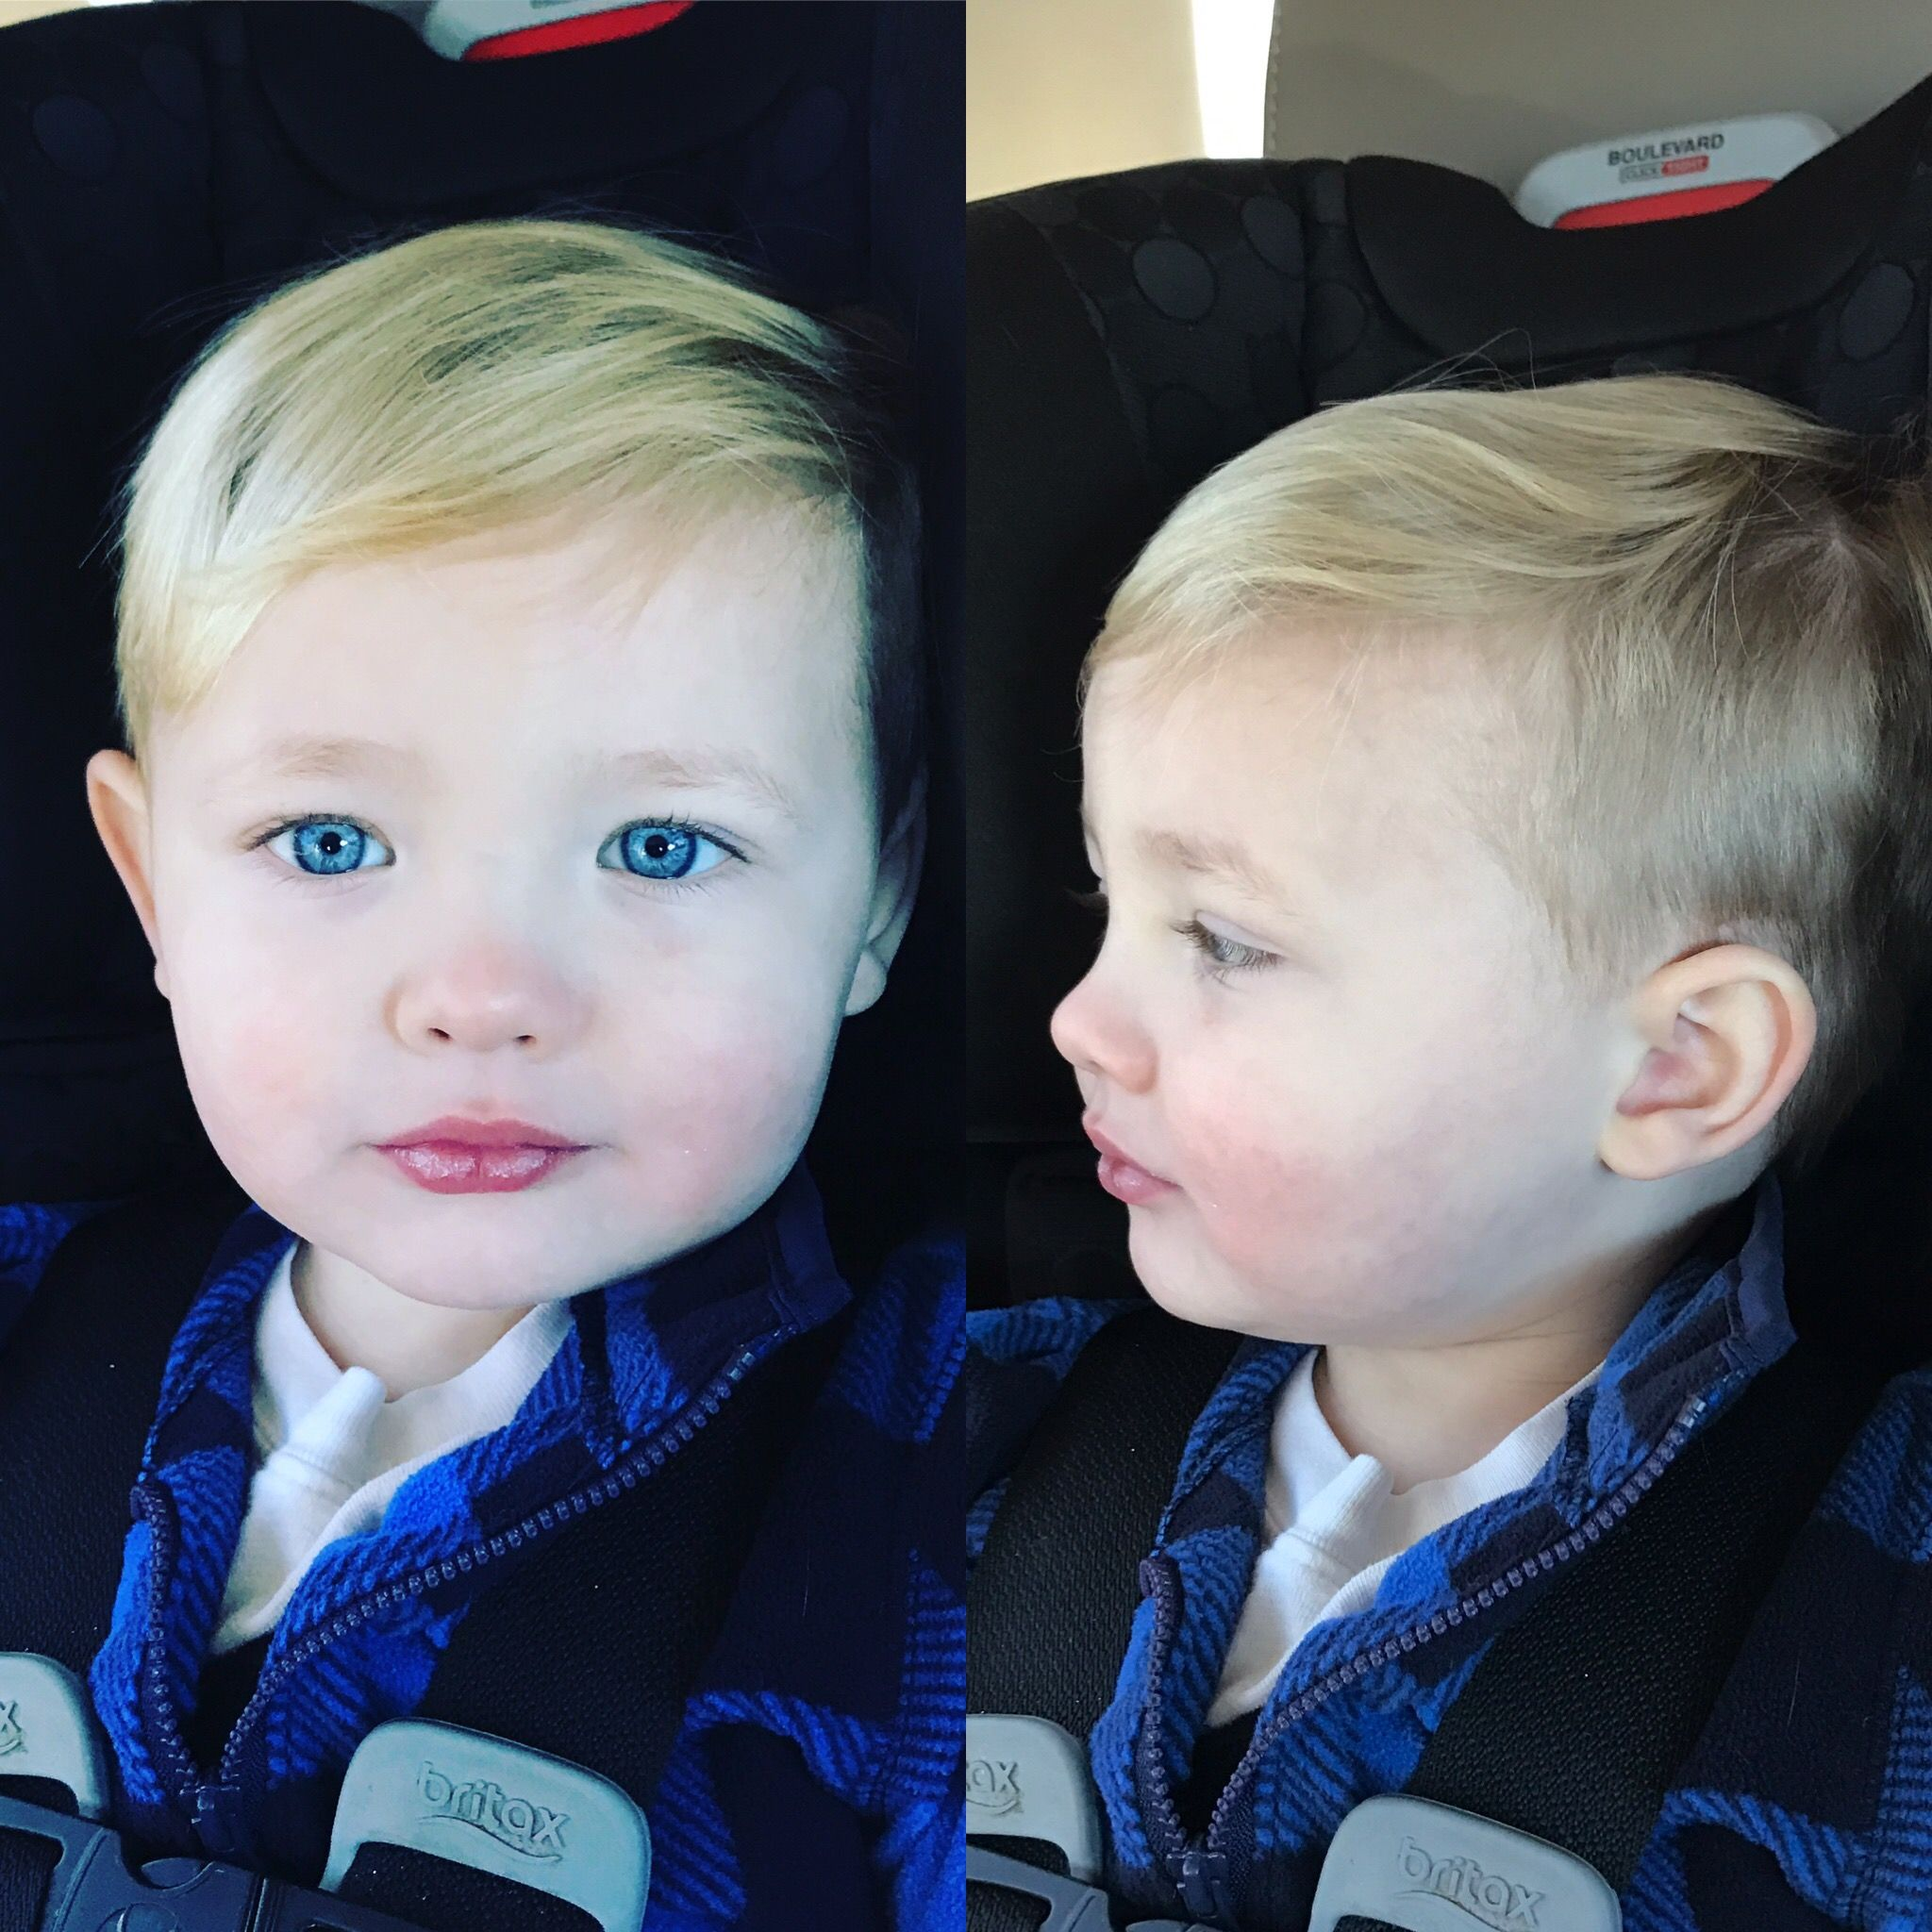 Outstanding Baby Hair Blonde Thin Cut Haircut Hairstyle Toddler 2017 Boys 2 Hairstyles For Women Draintrainus